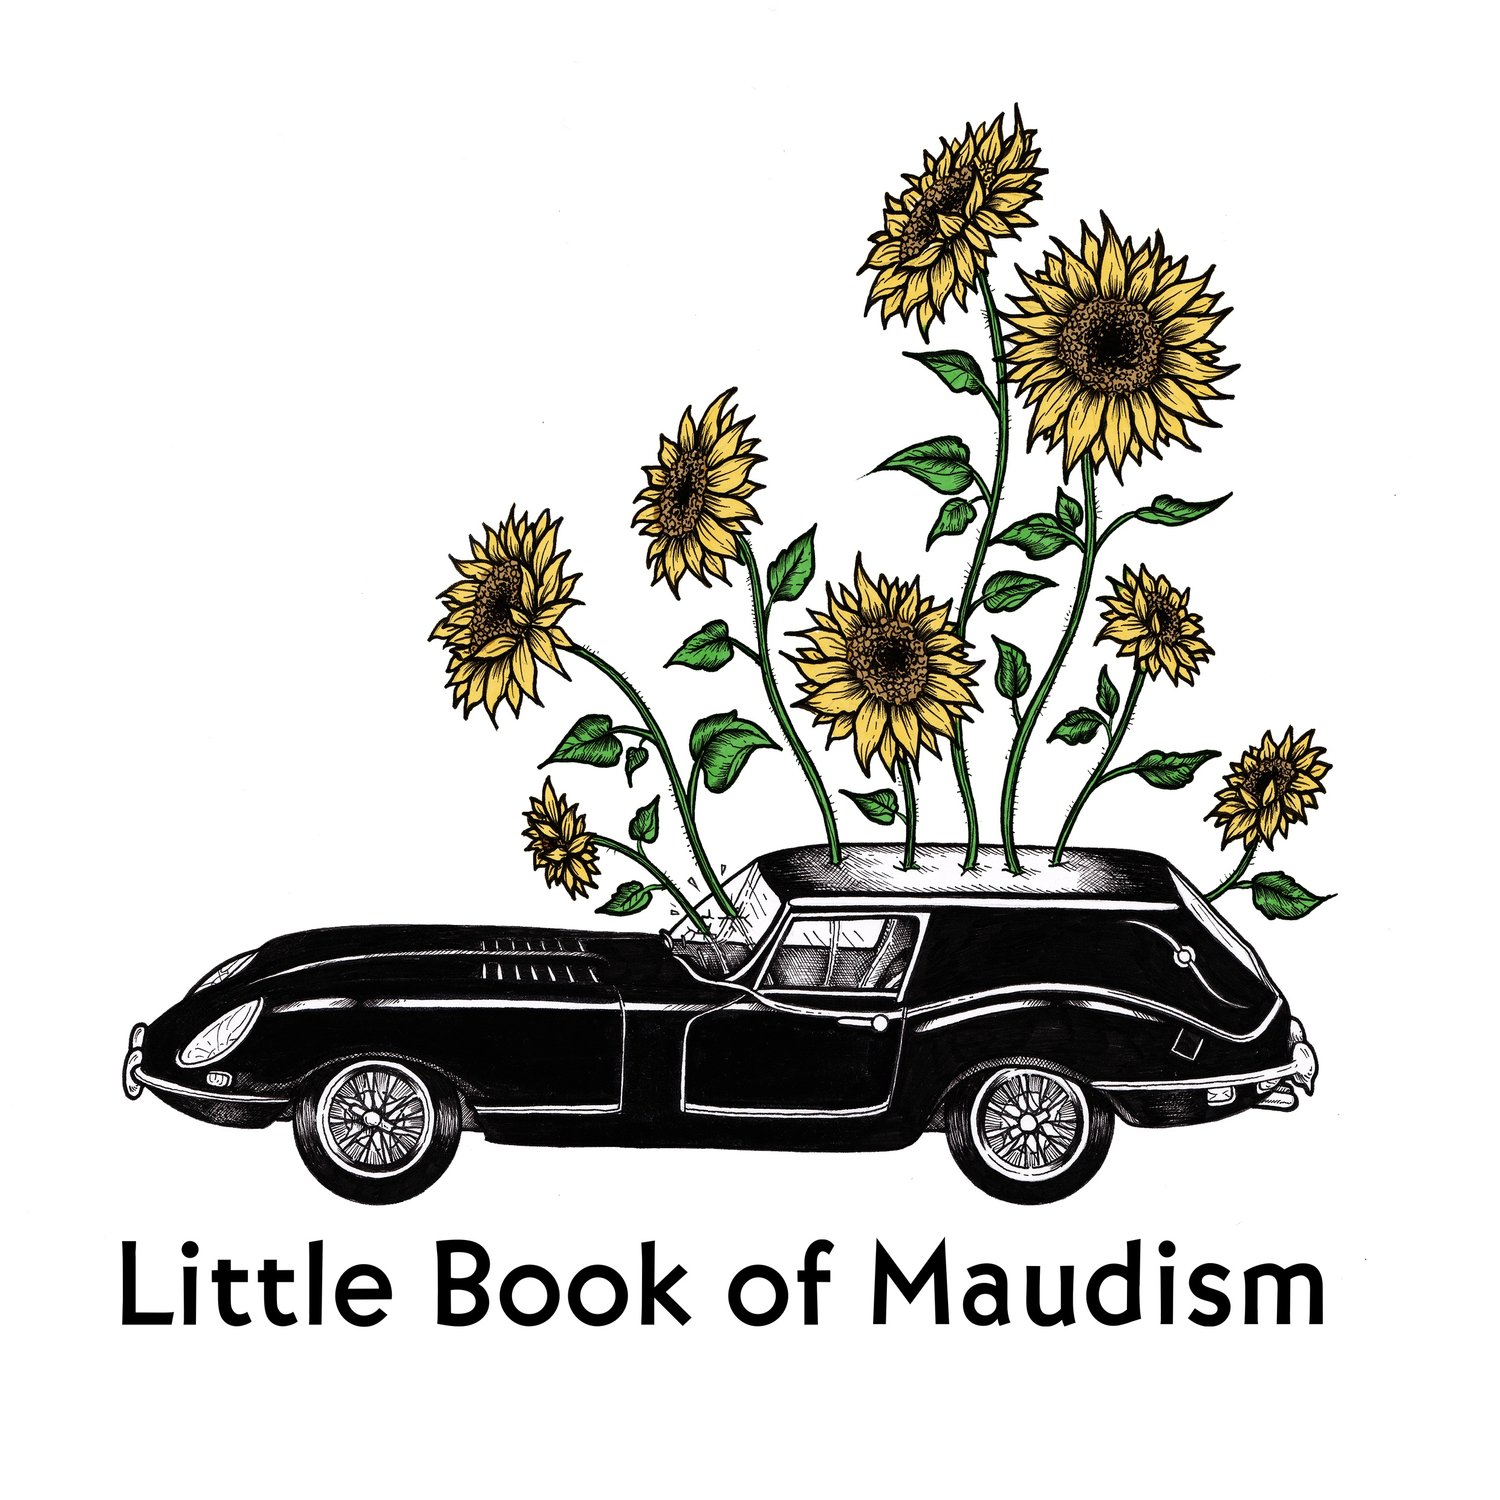 Little Book of Maudism